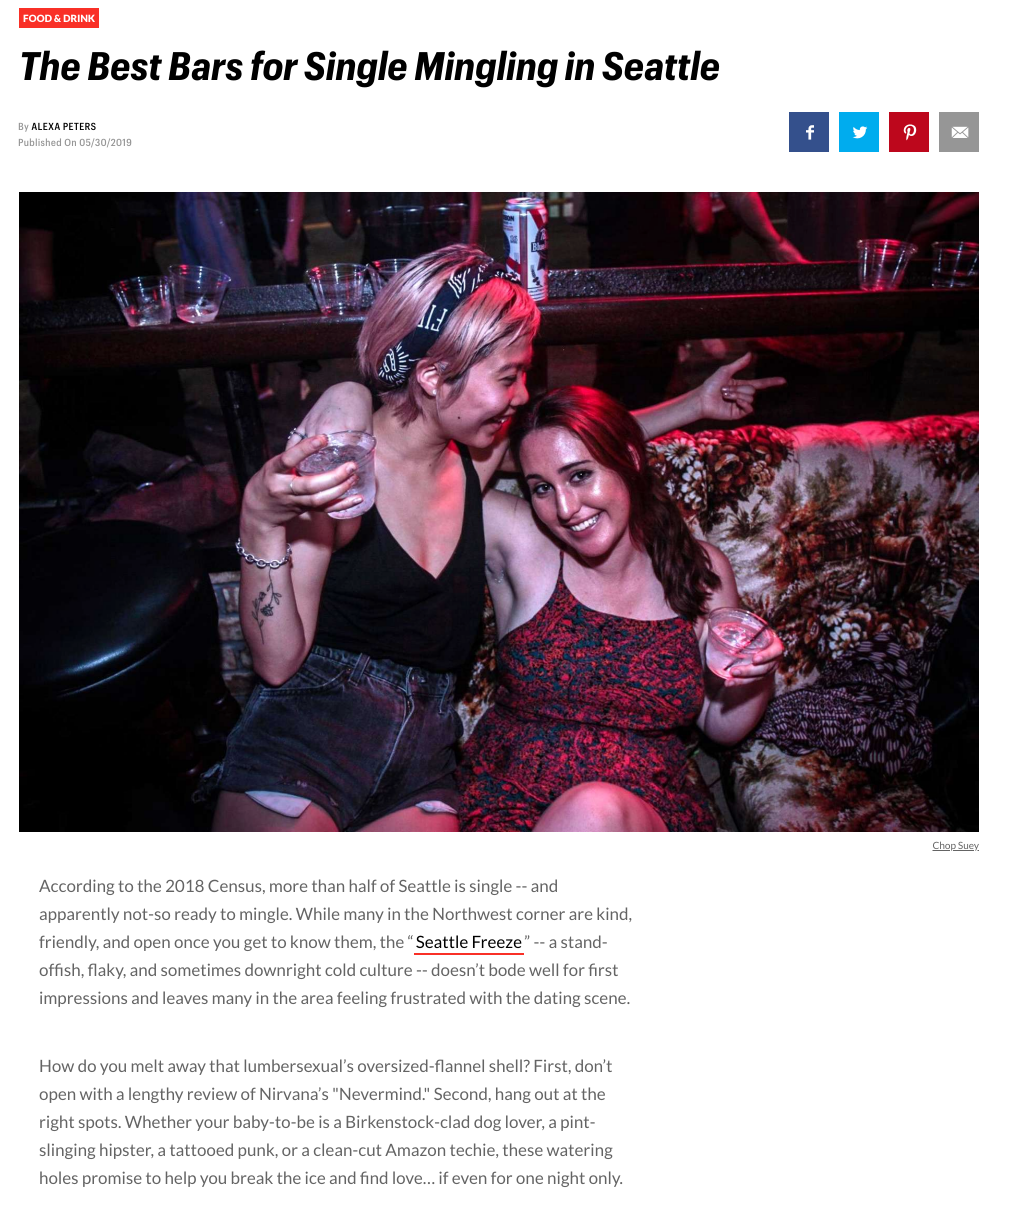 screenshot-www.thrillist.com-2019.06.12-10-44-49